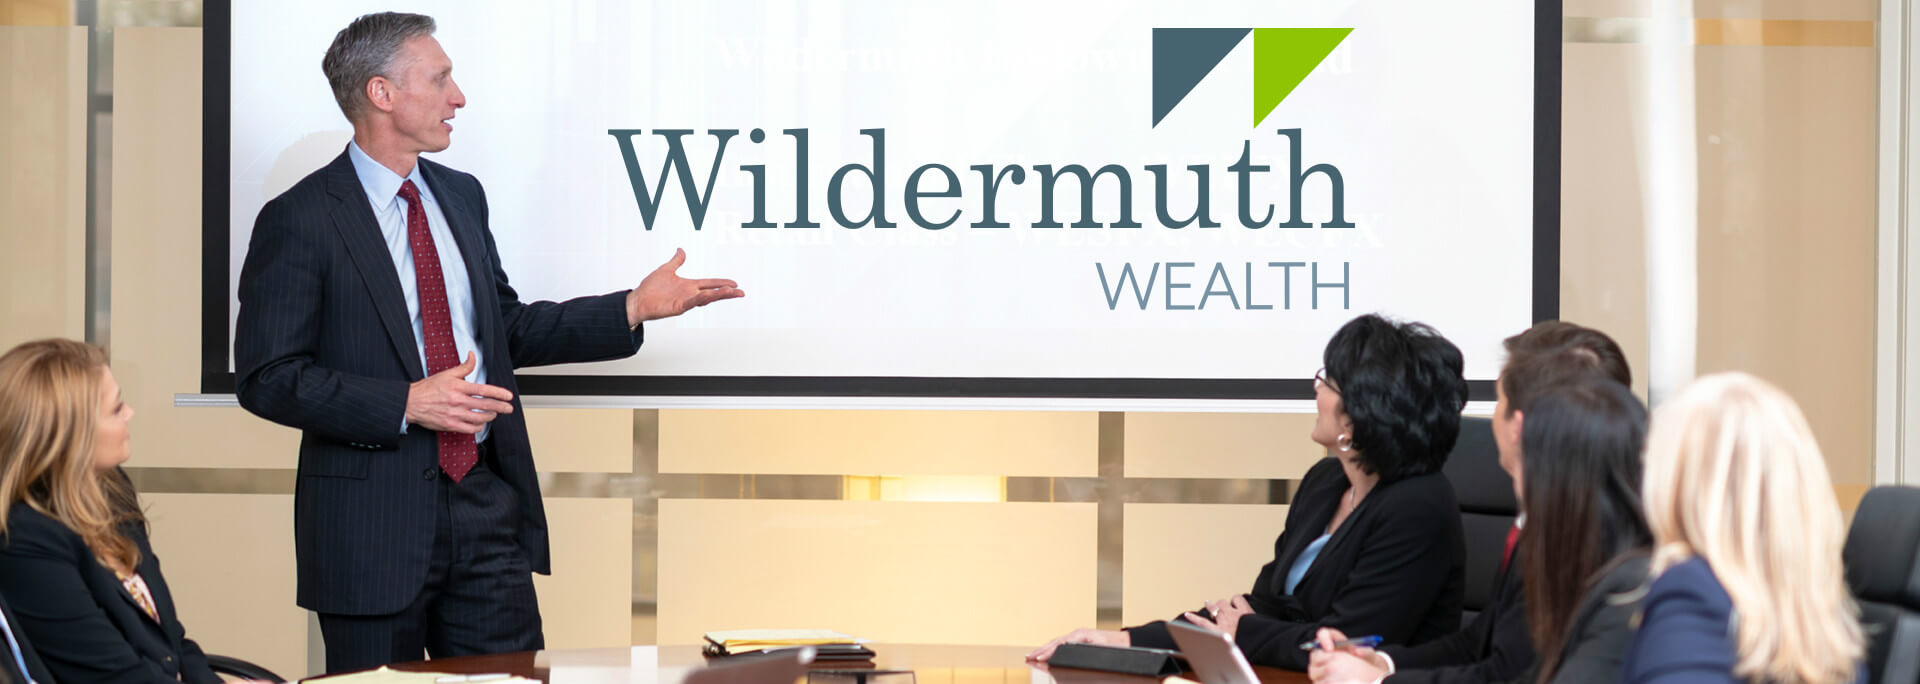 Wildermuth Wealth Atlanta home banner conference room